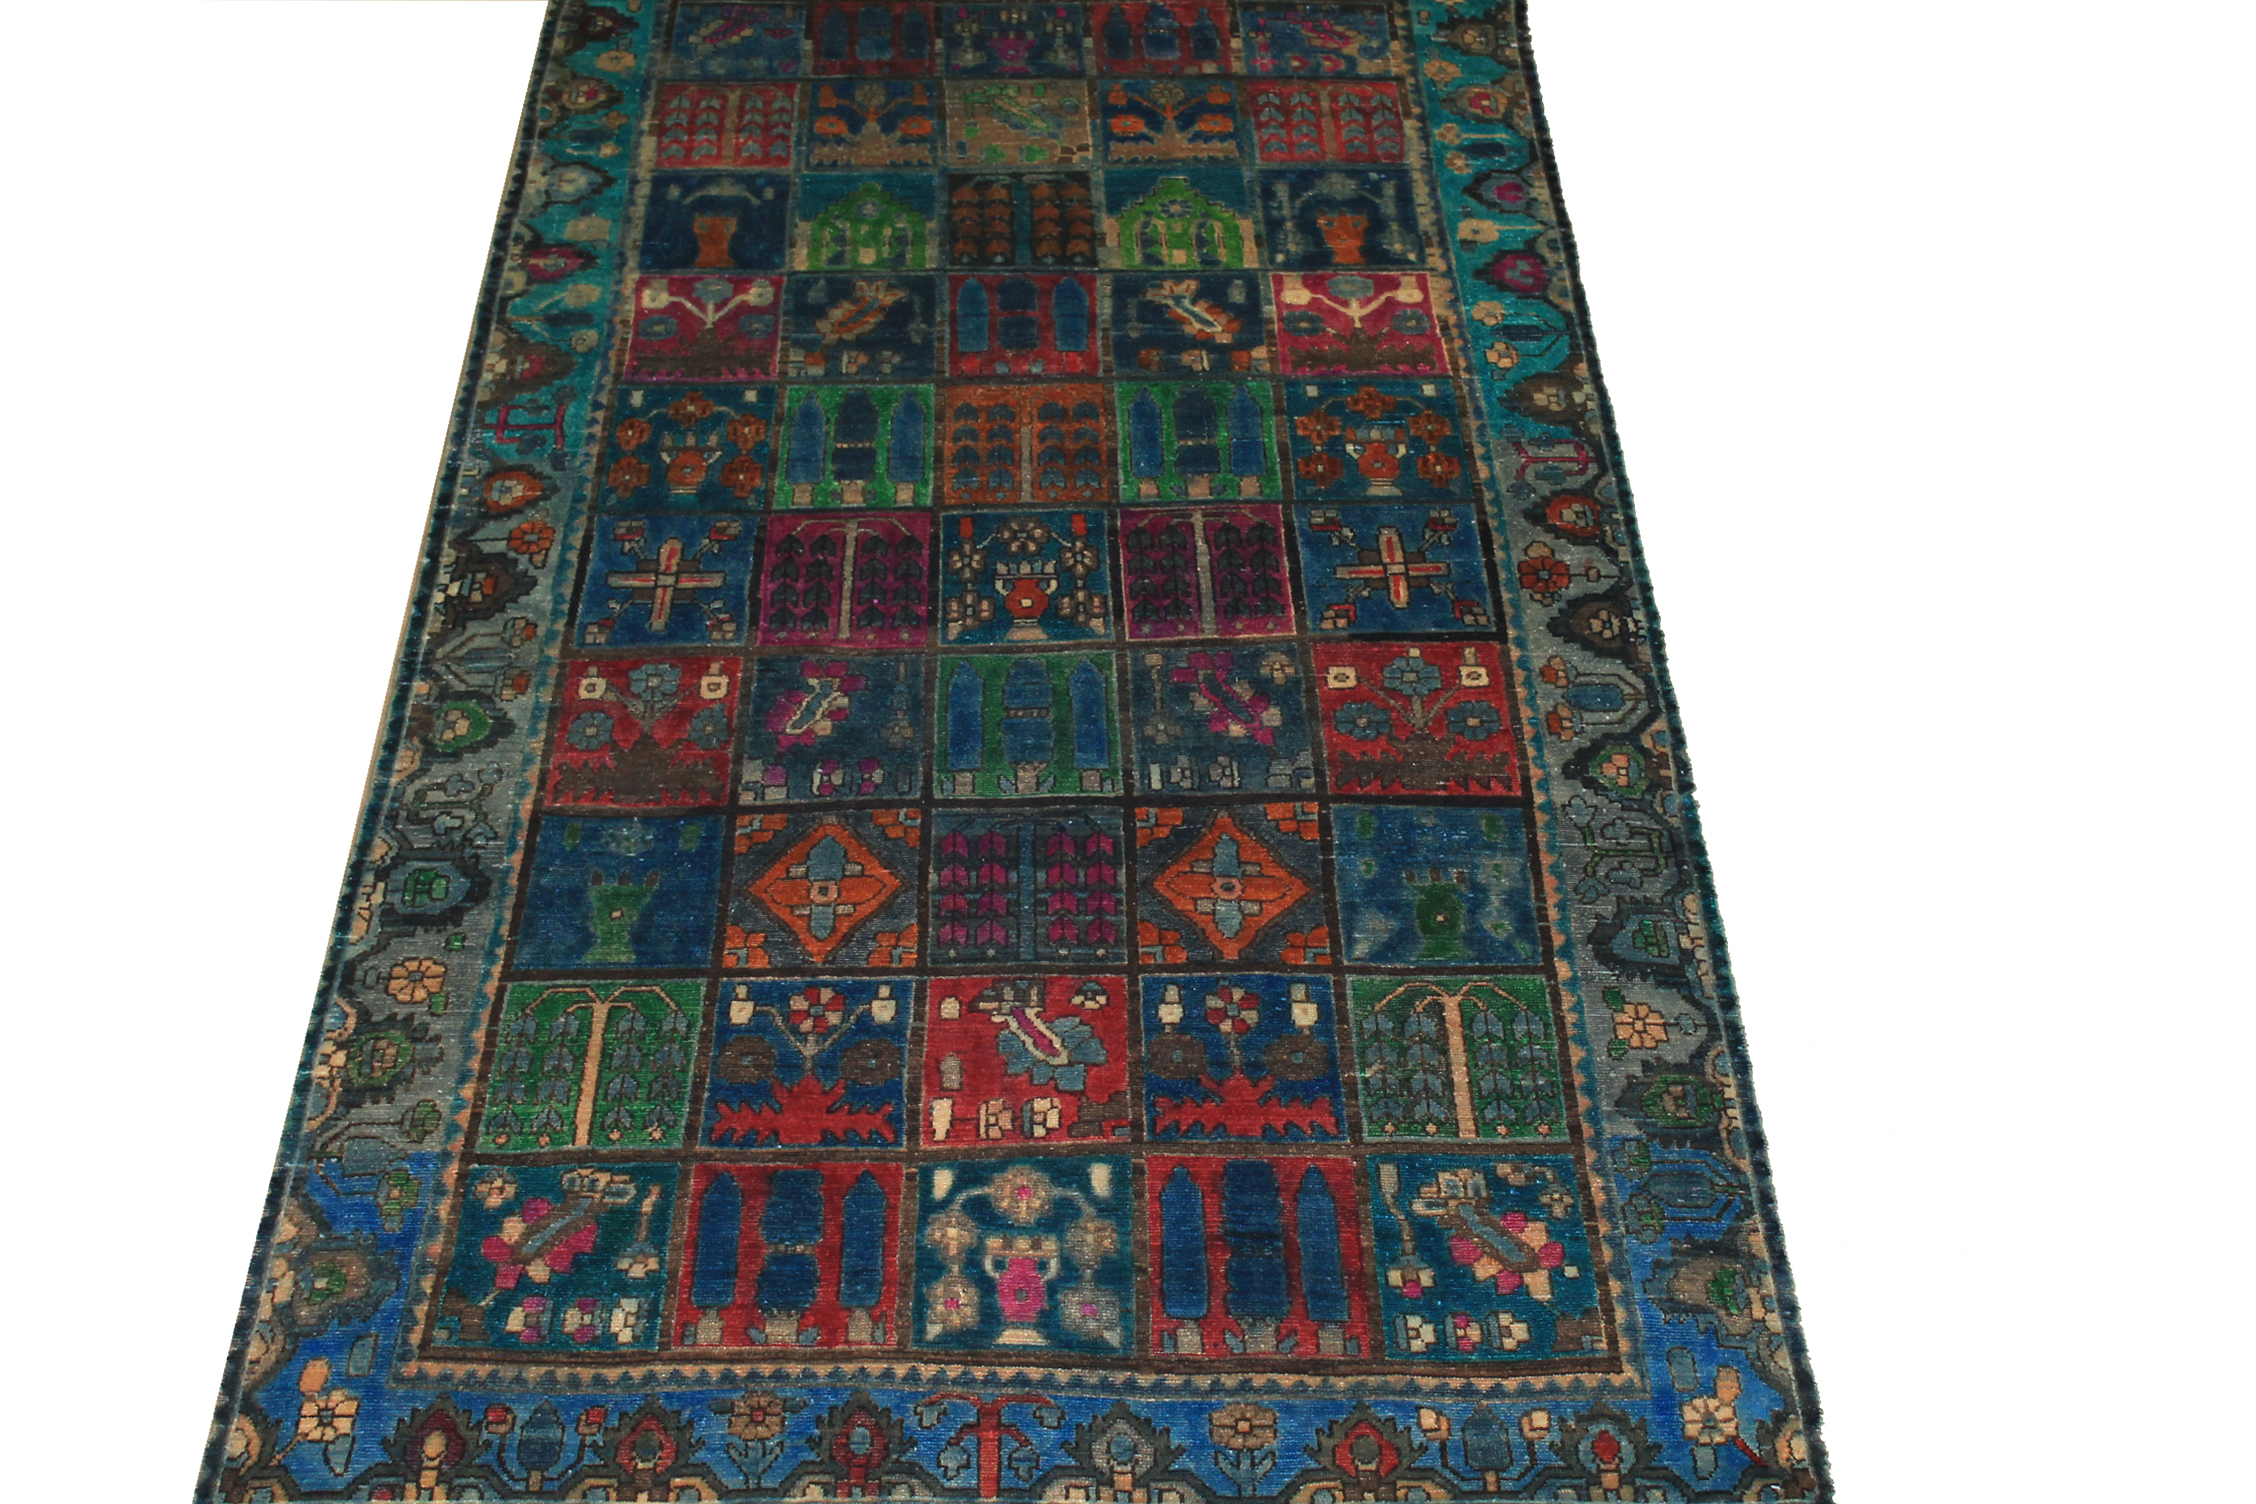 5x7/8 Vintage Hand Knotted Wool Area Rug - MR024467